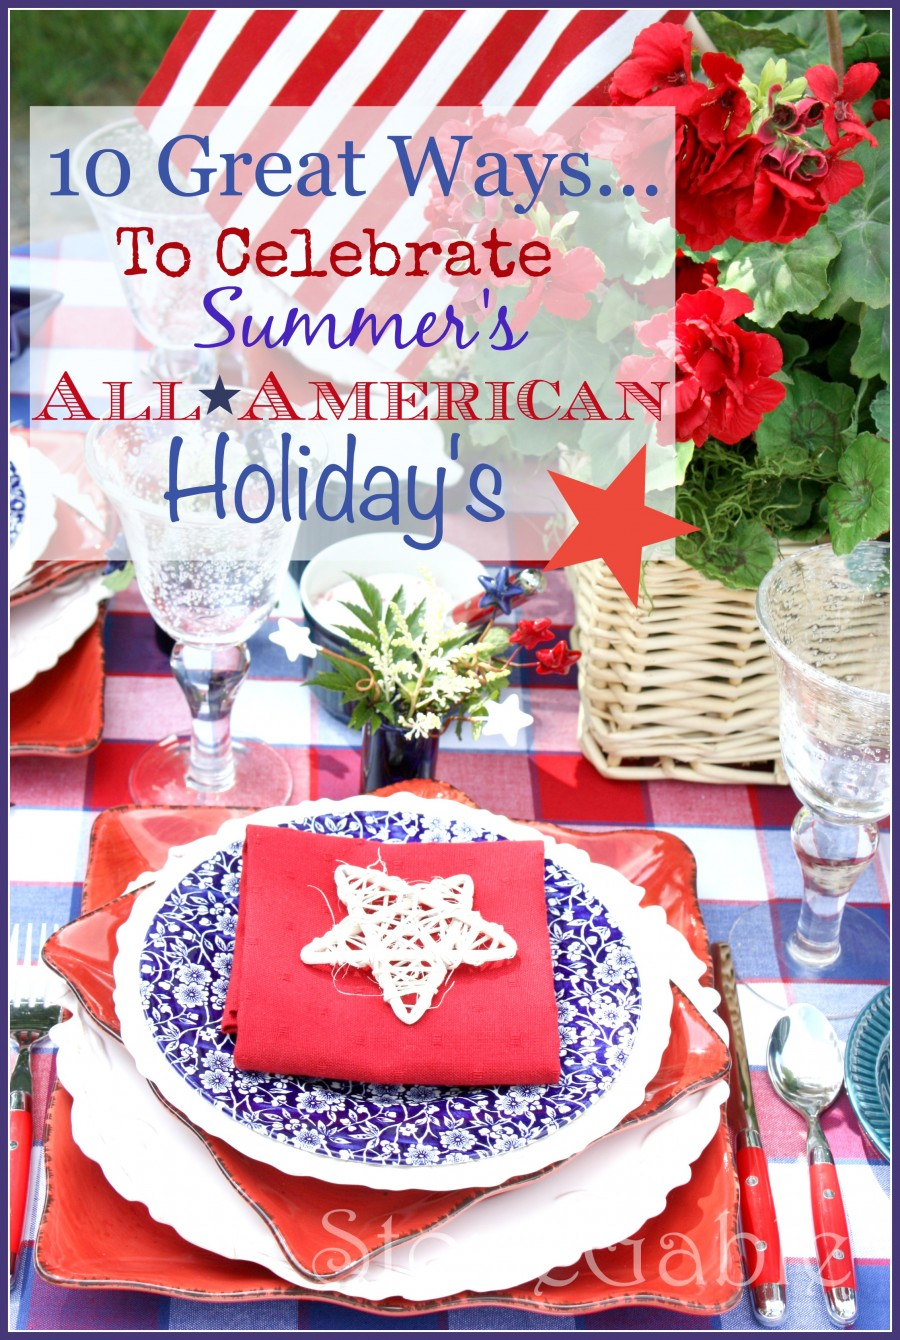 10 GREAT WAYS TO CELEBRATE SUMMER'S ALL AMERICAN HOLIDAYS